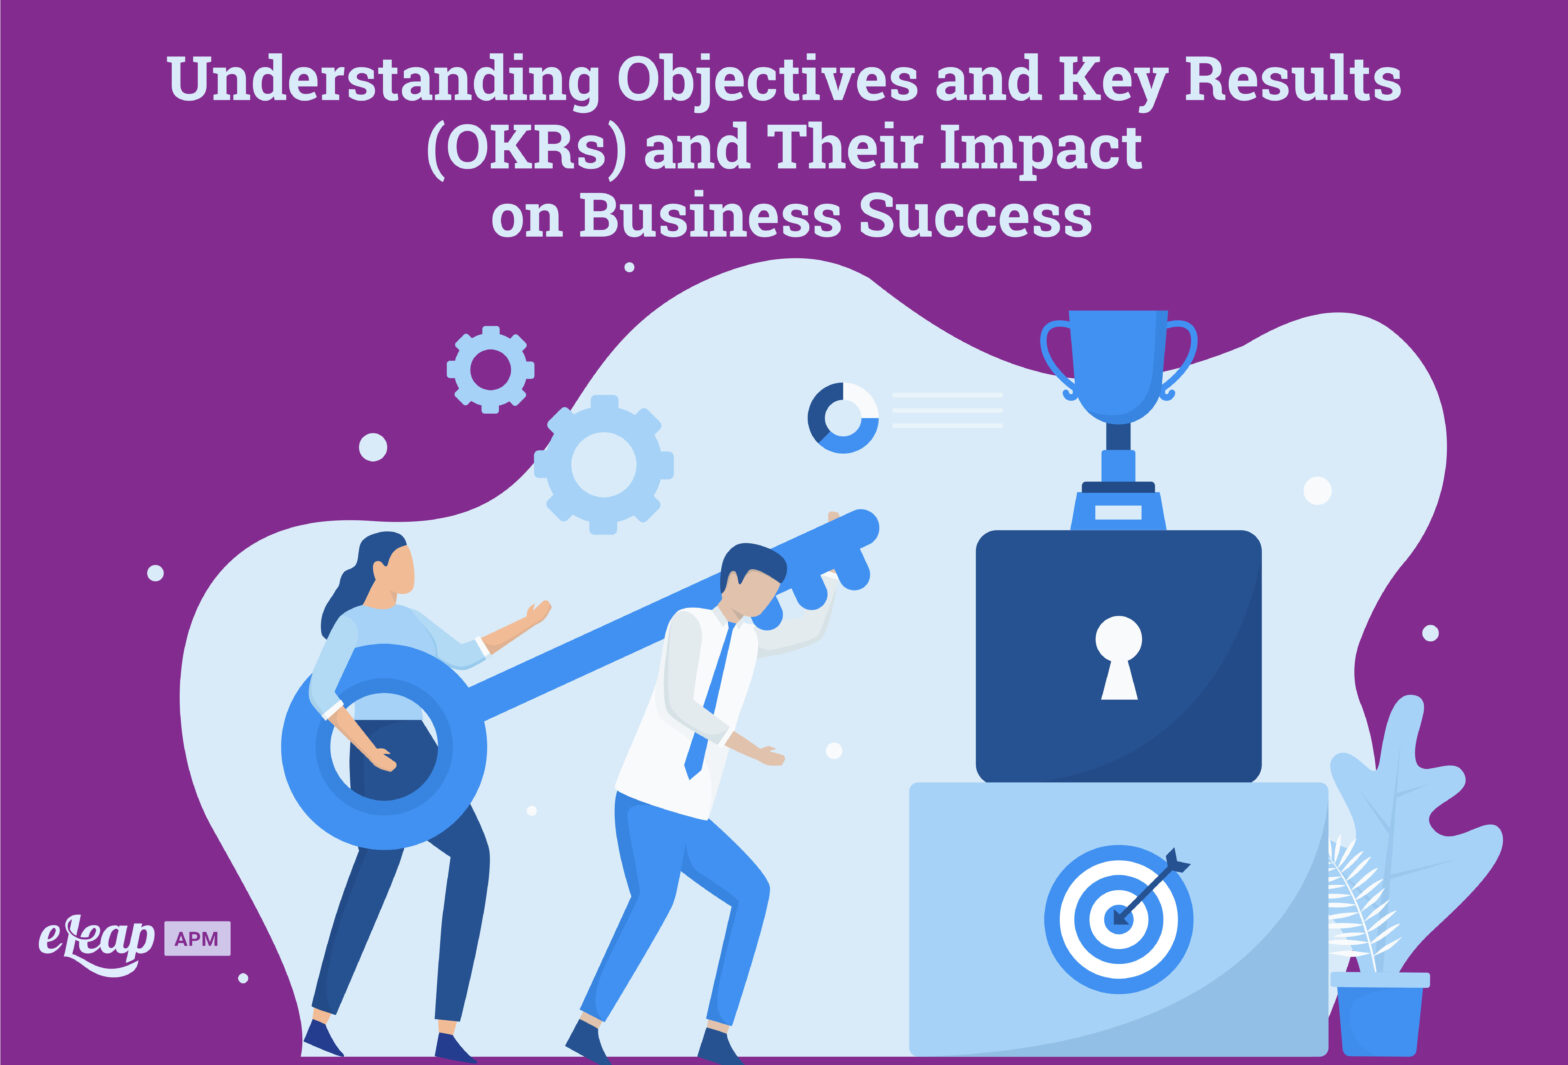 Understanding Objectives and Key Results (OKRs) and Their Impact on Business Success